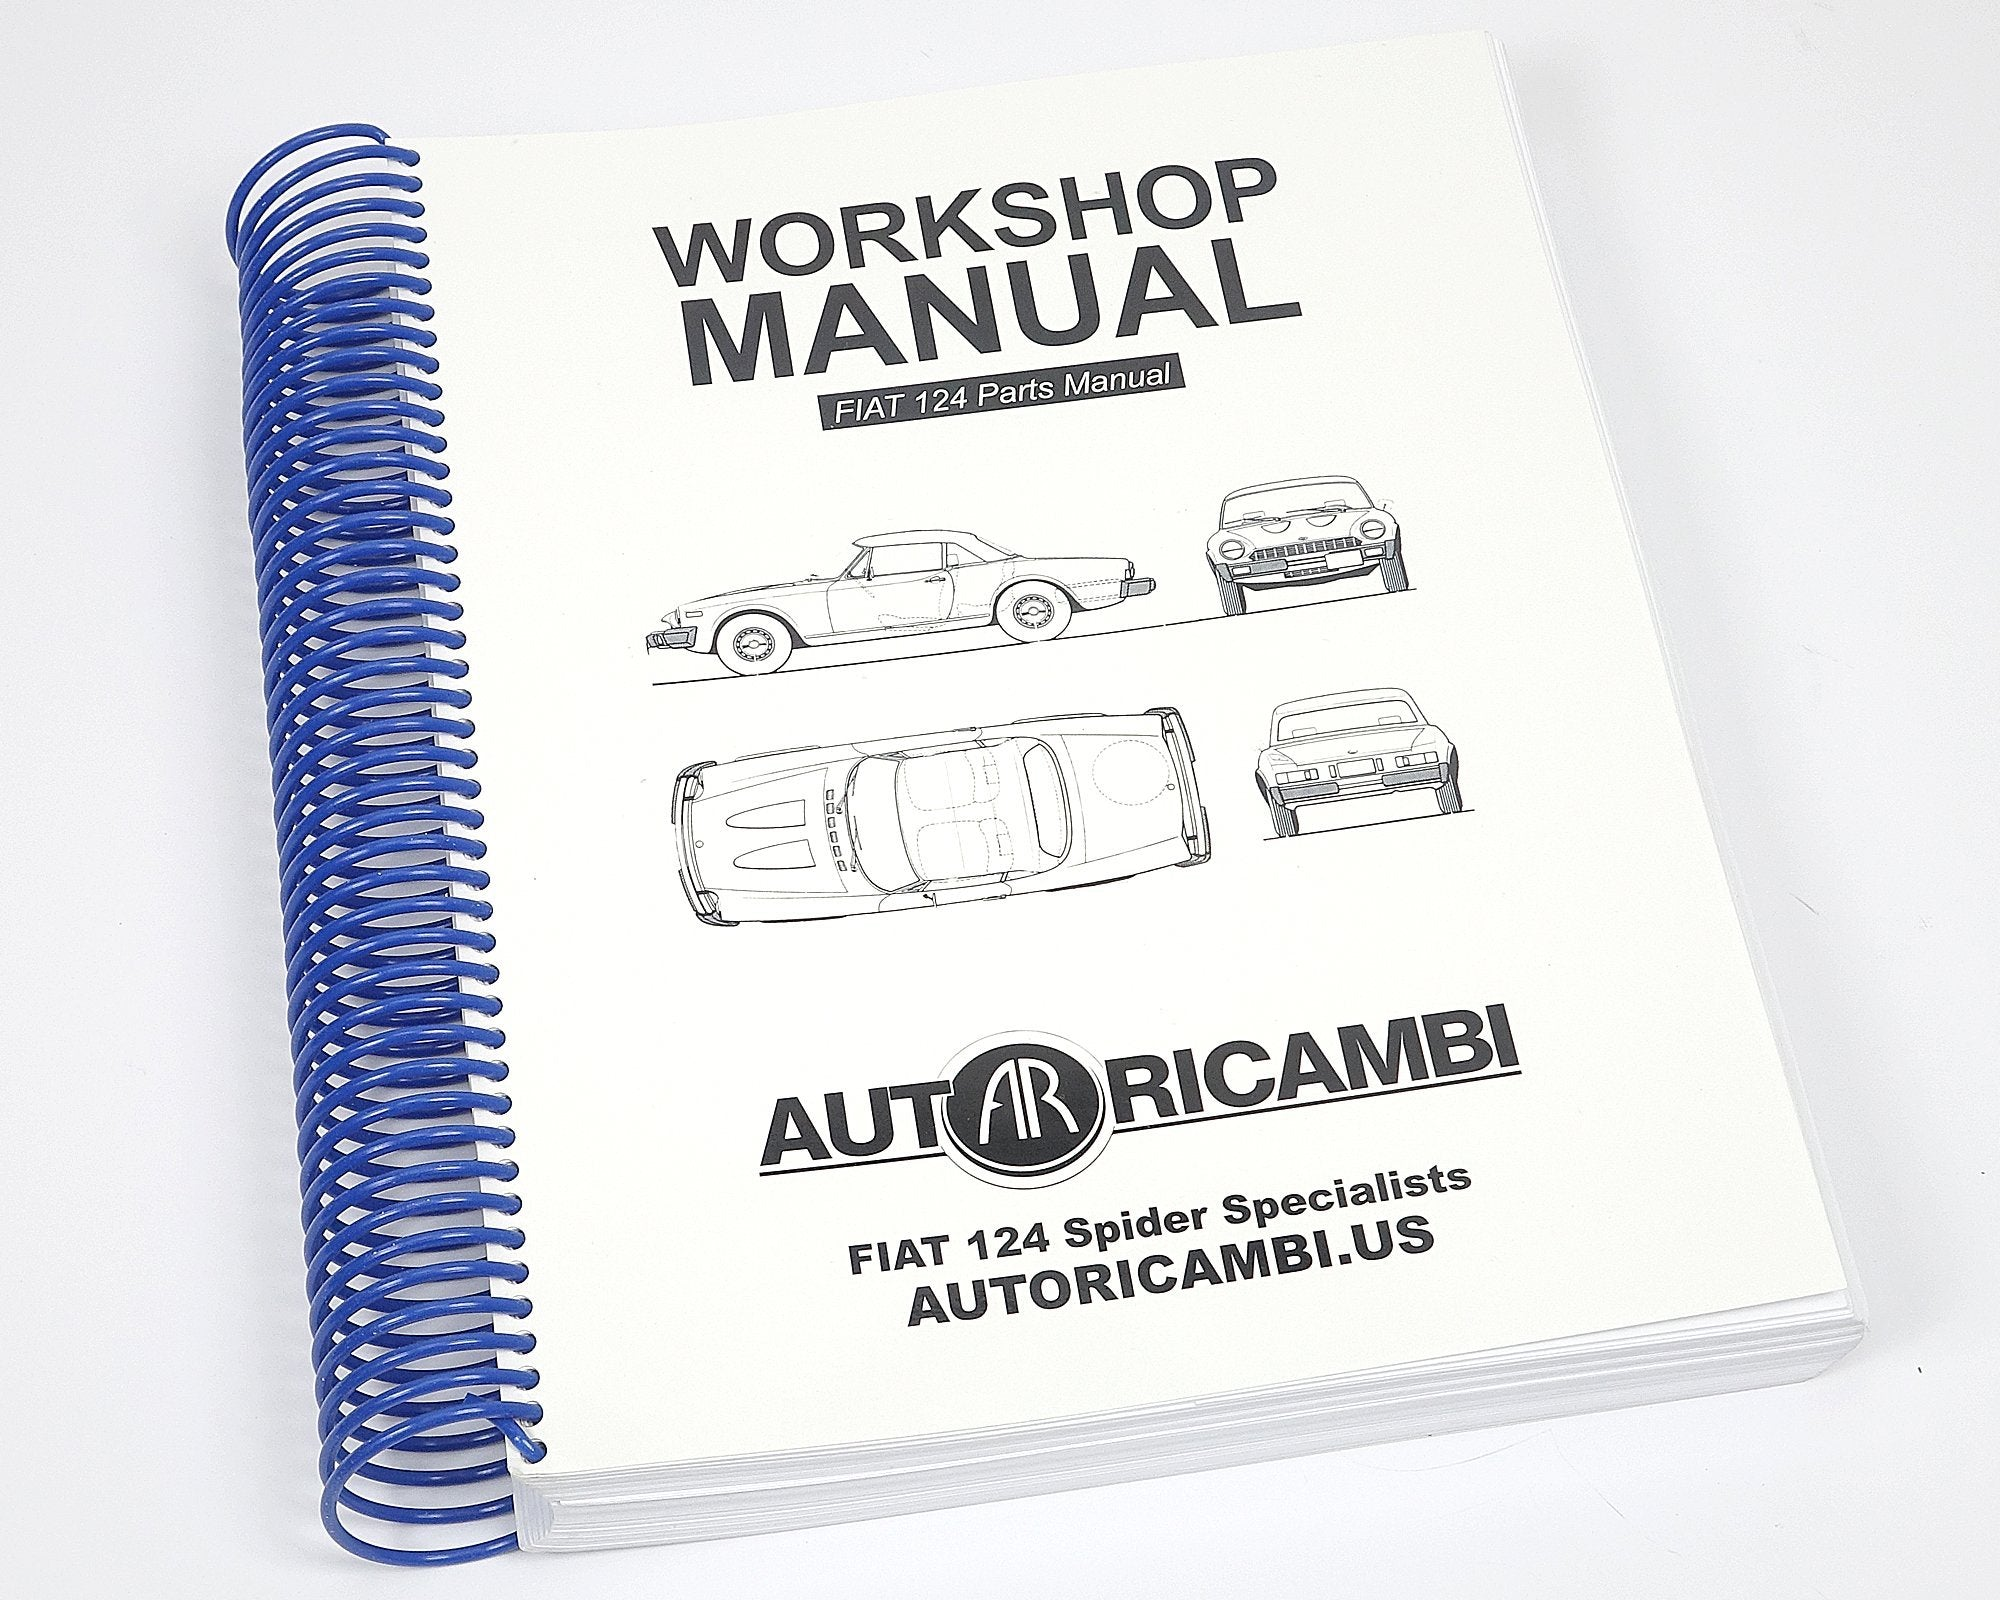 factory shop manual fiat 124 spider parts auto ricambi rh autoricambi us fiat 124 spider abarth owners manual fiat 124 spider owners manual 2018